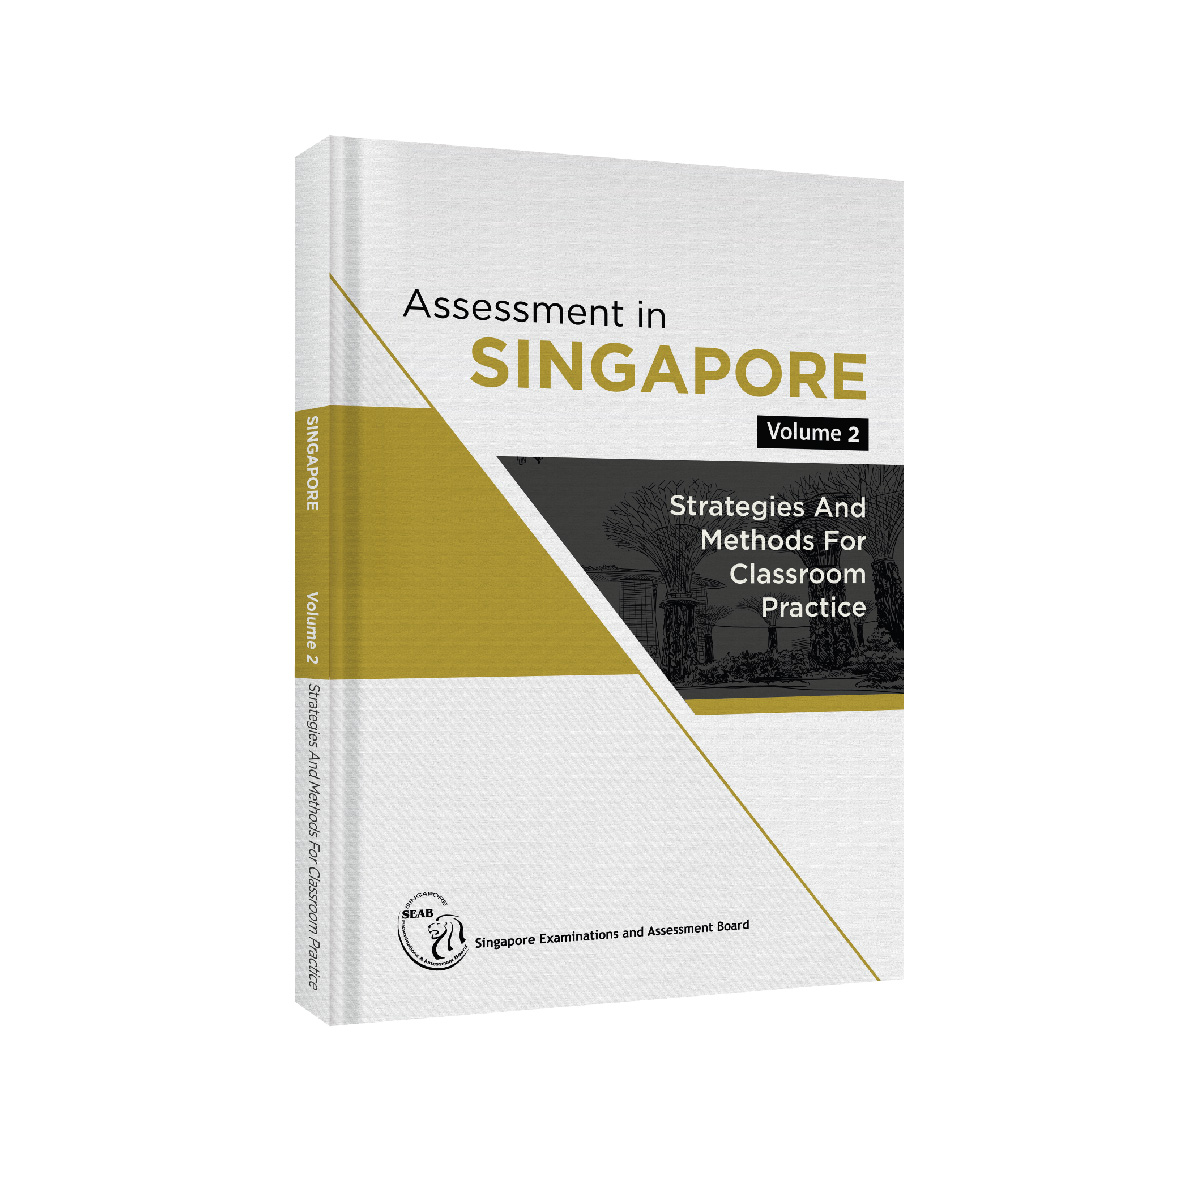 Assessment in Singapore Vol.2